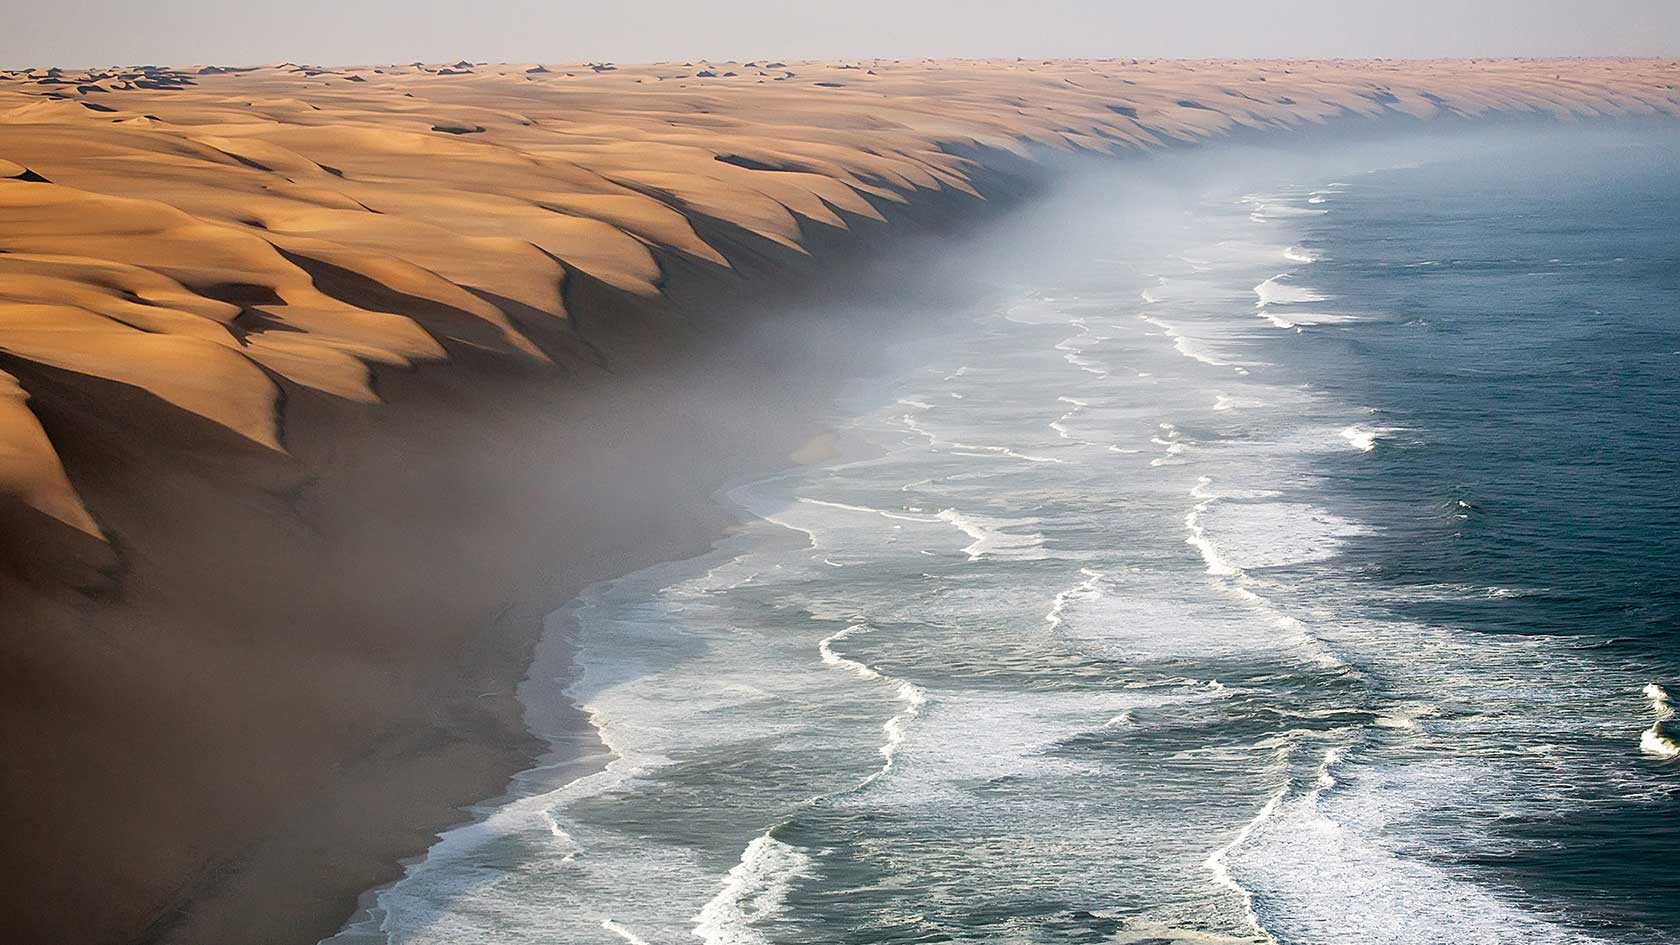 Namib Desert facing the Ocean, Namibia